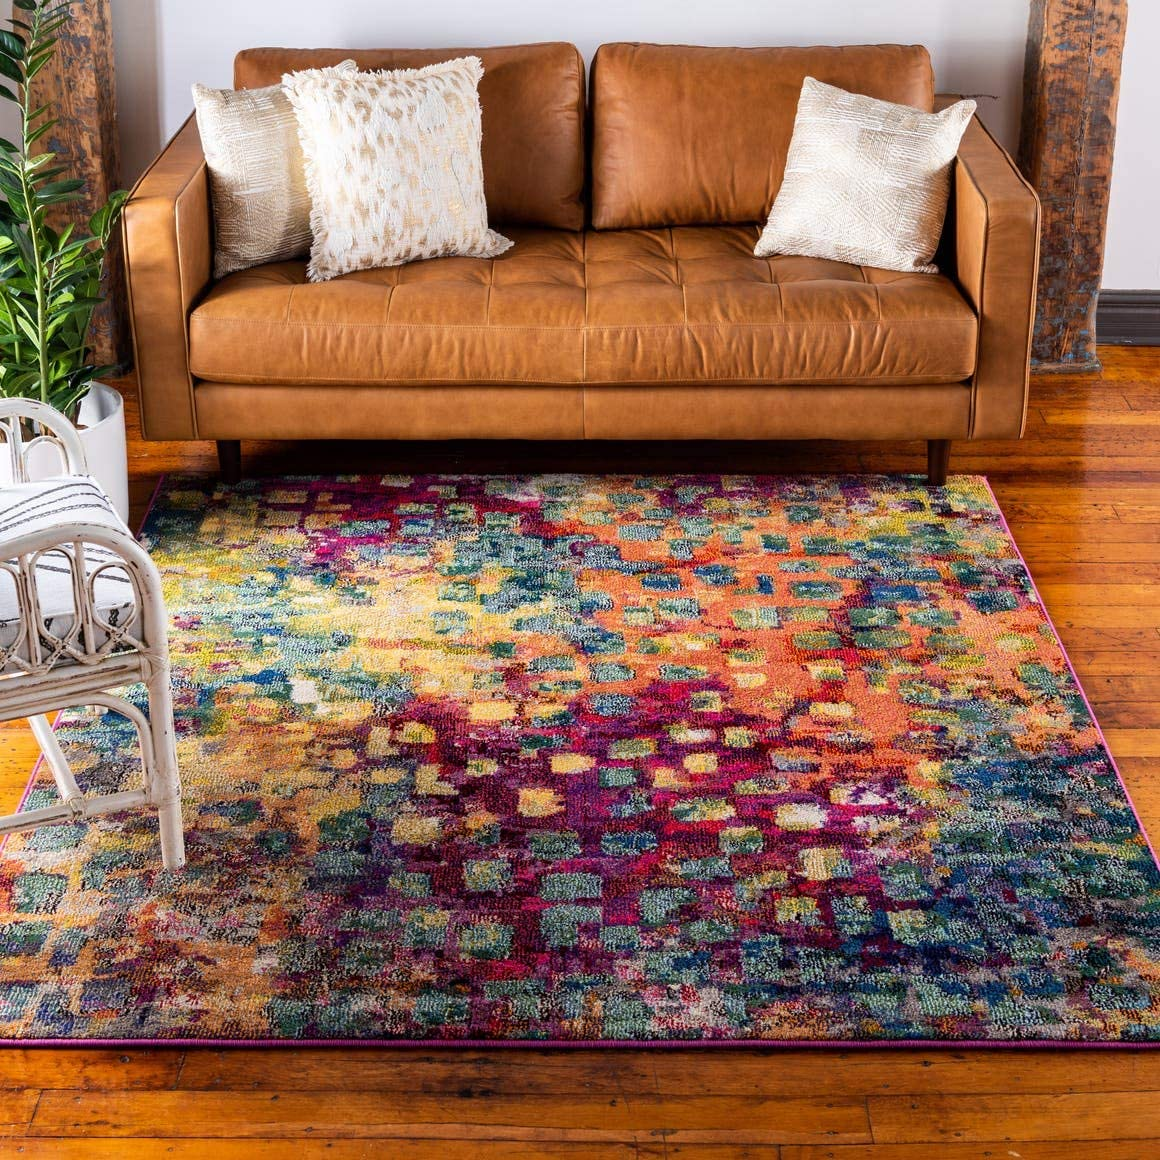 Unique Loom Jardin Collection Colorful Abstract Multi Square Rug 8 0 x 8 0